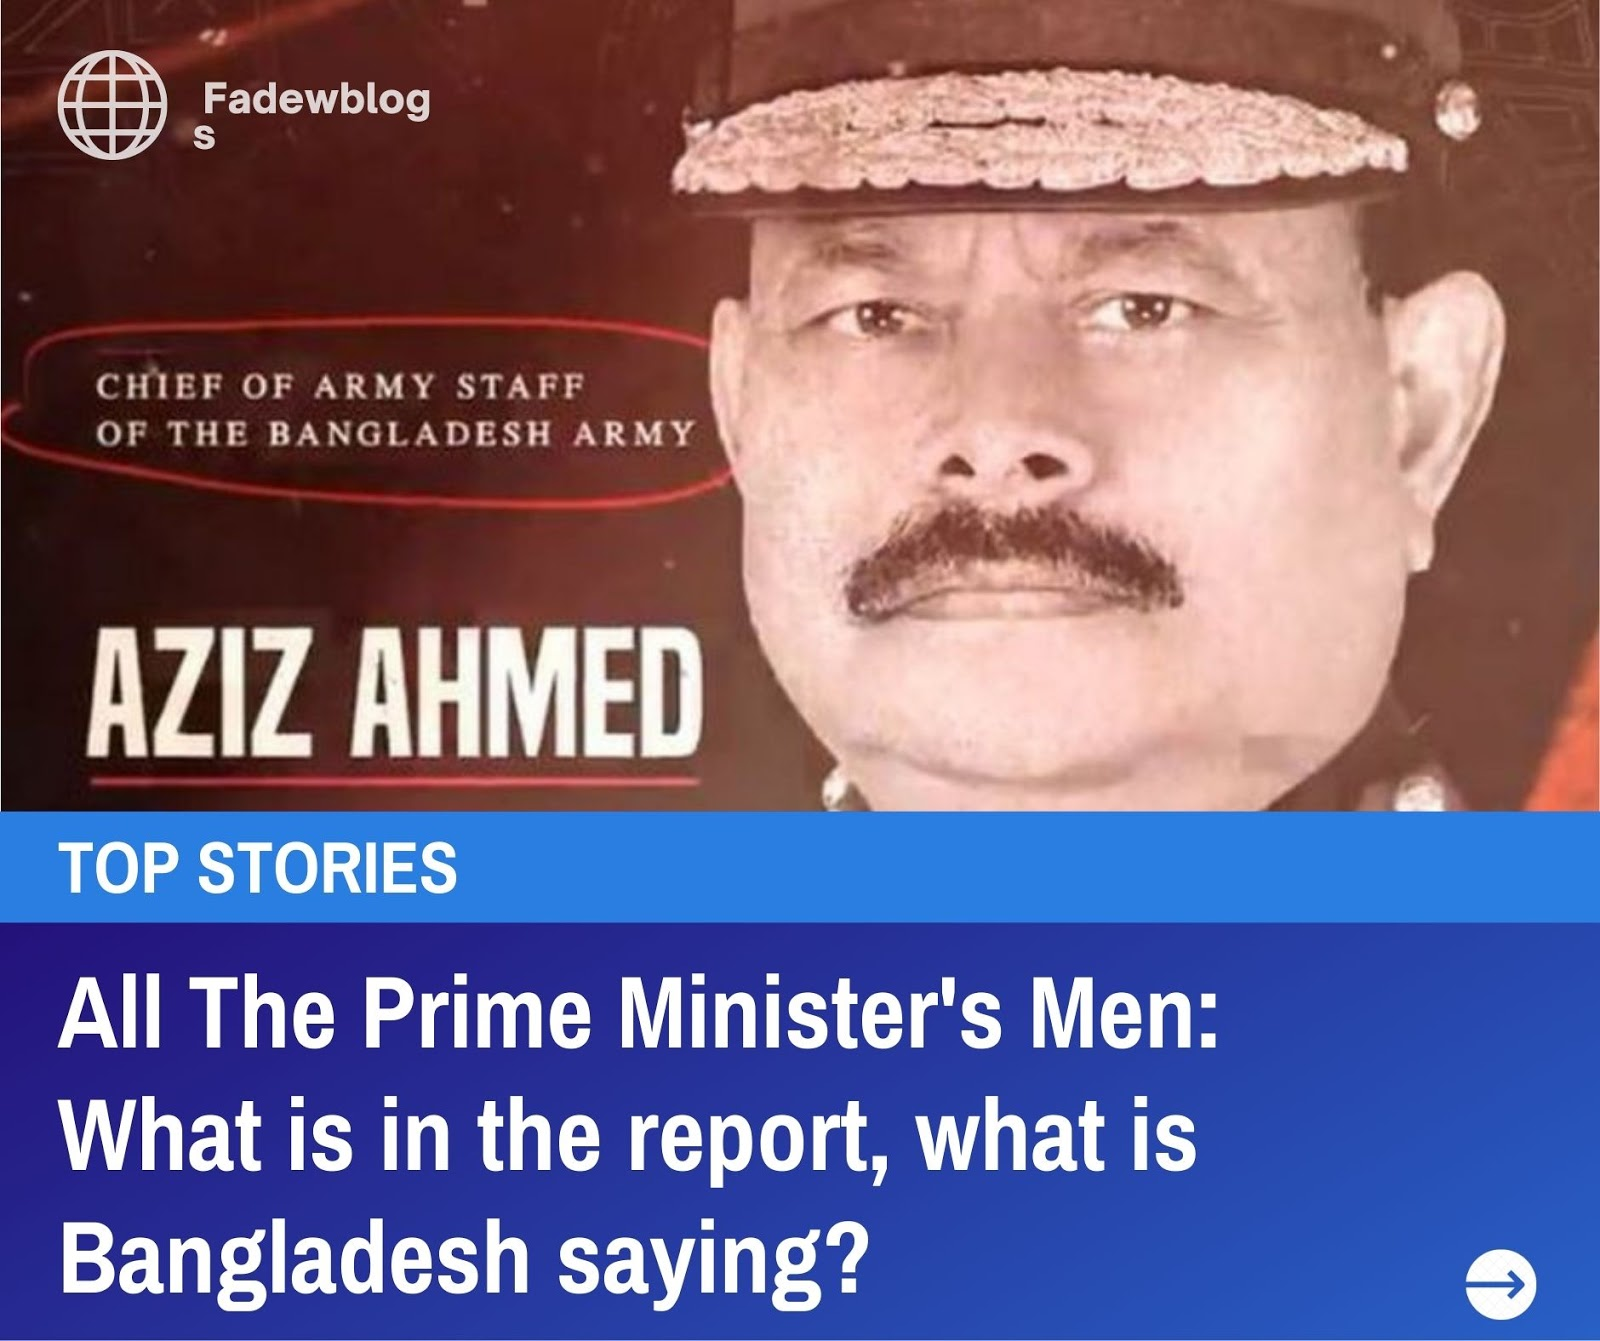 All The Prime Minister's Men: What is in the report, what is Bangladesh saying?